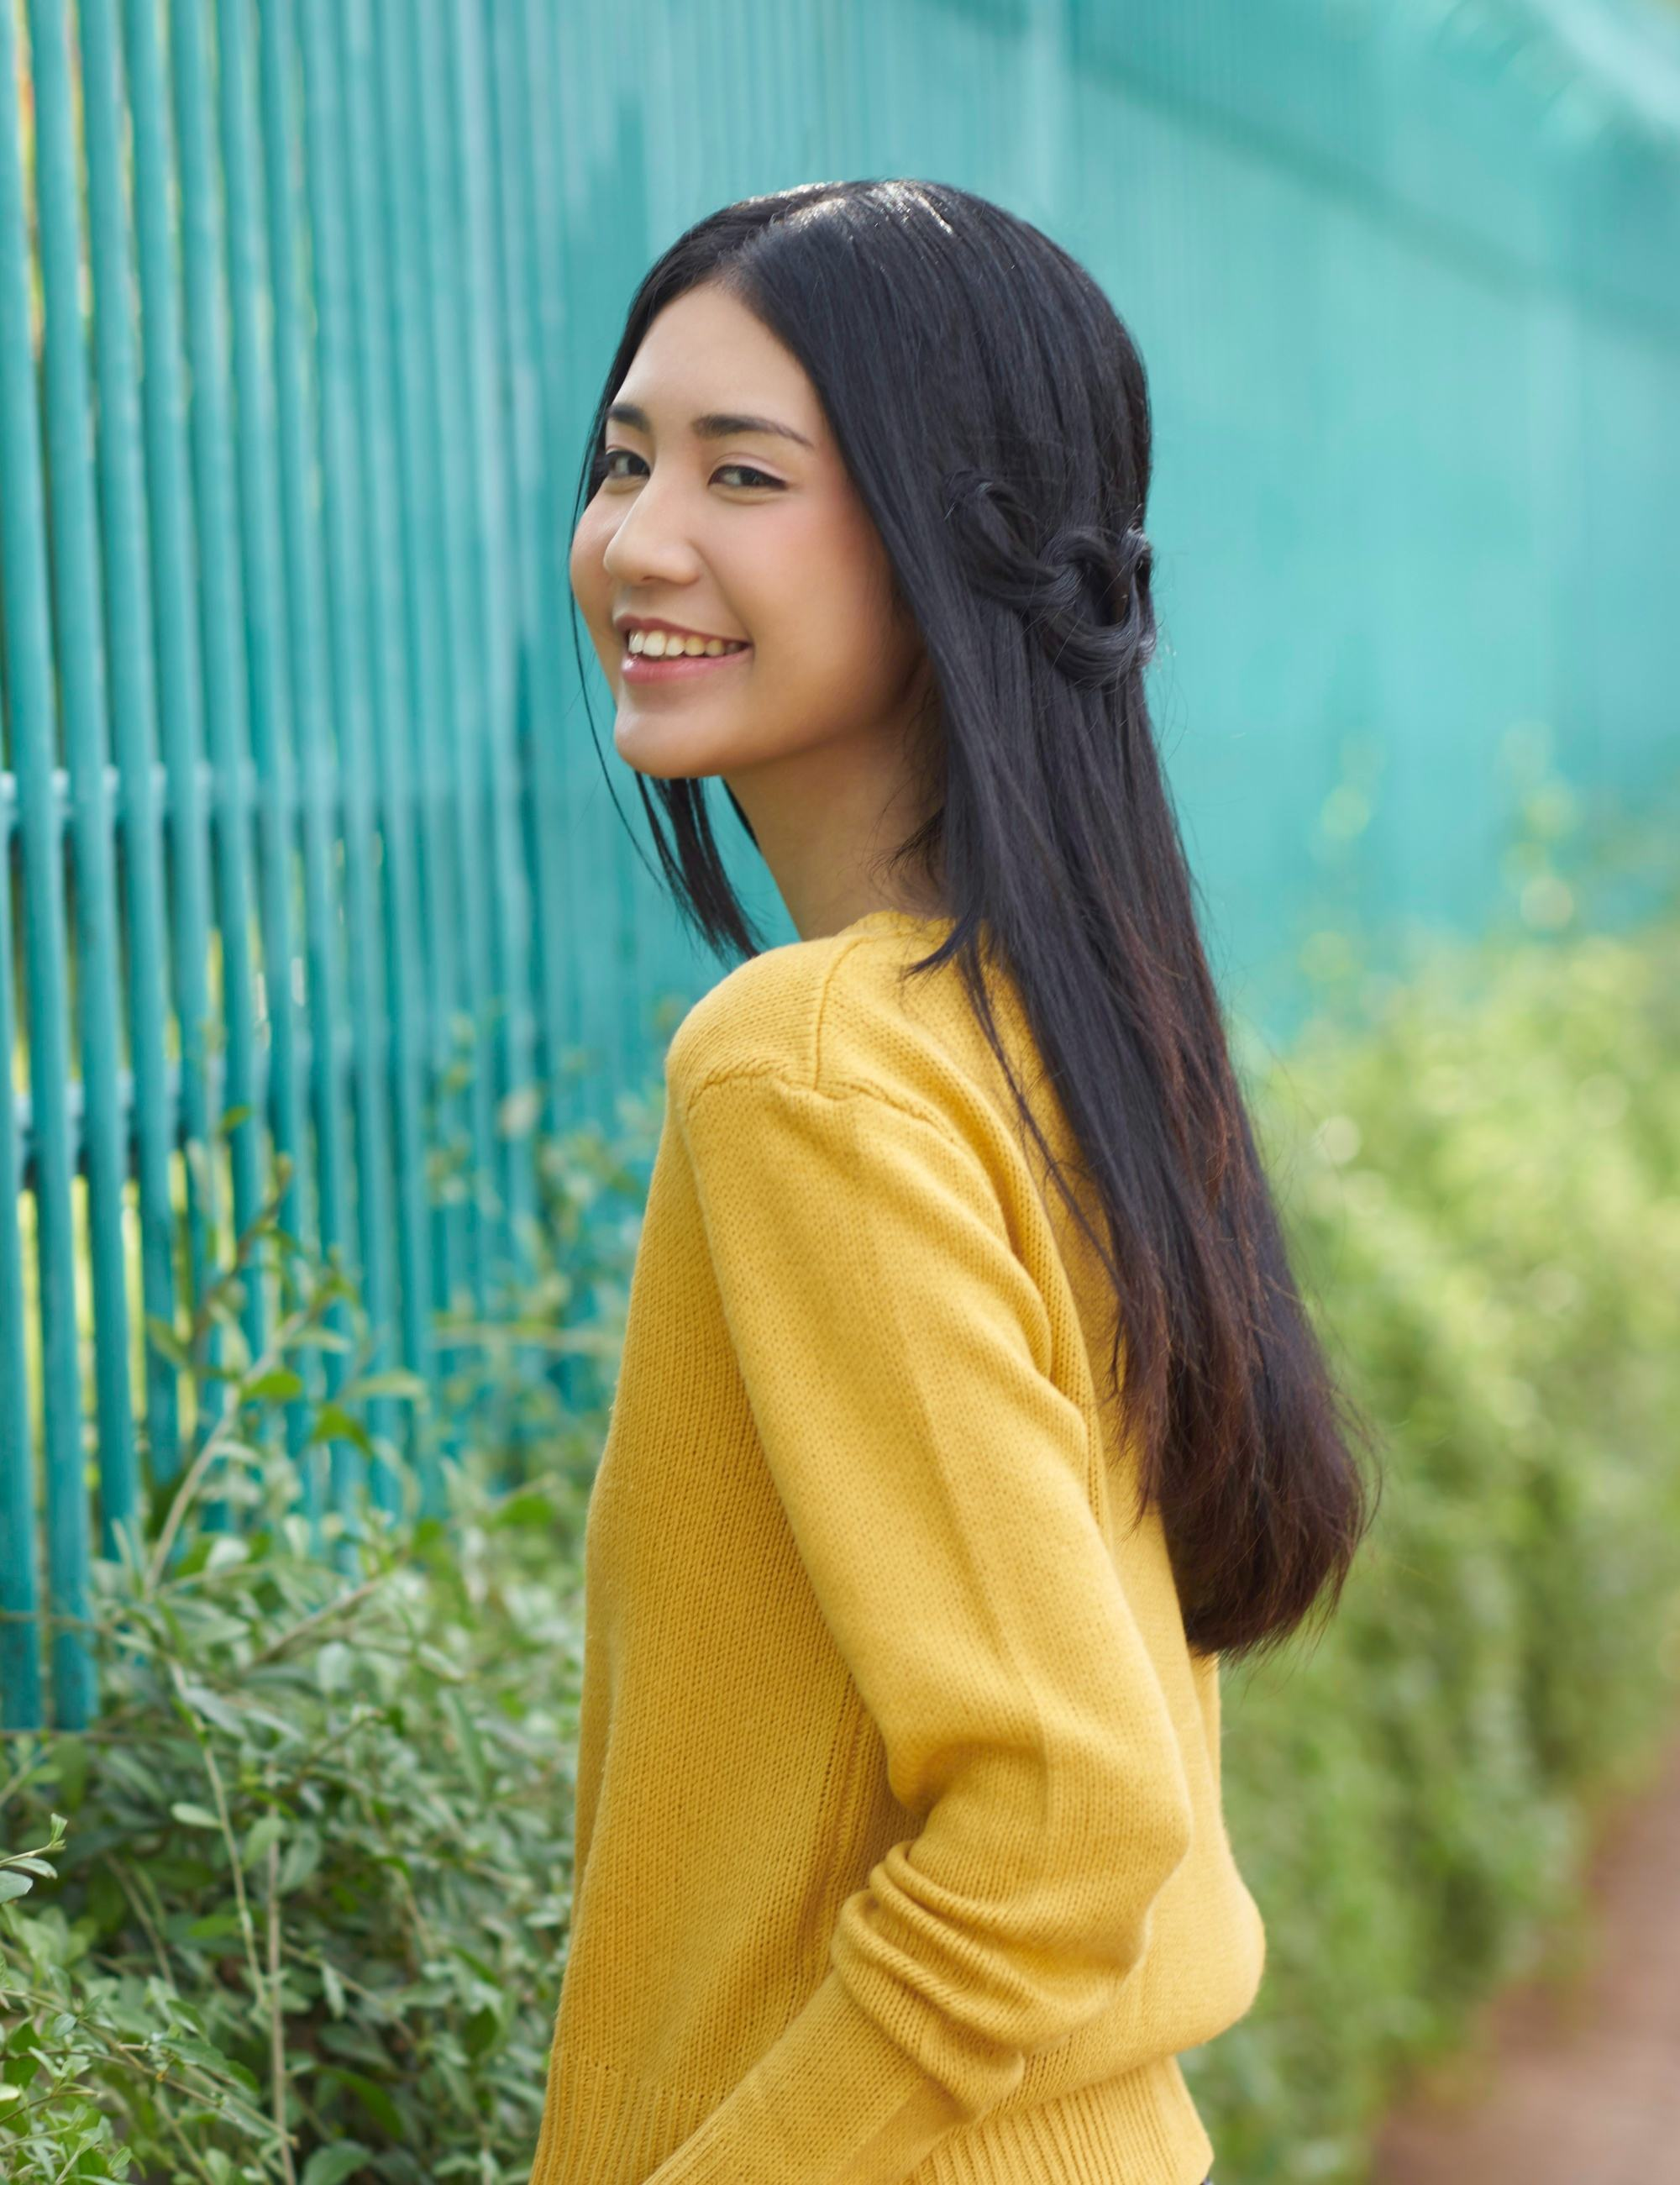 Asian woman with long black hair in a loop braid wearing a yellow sweater outdoors